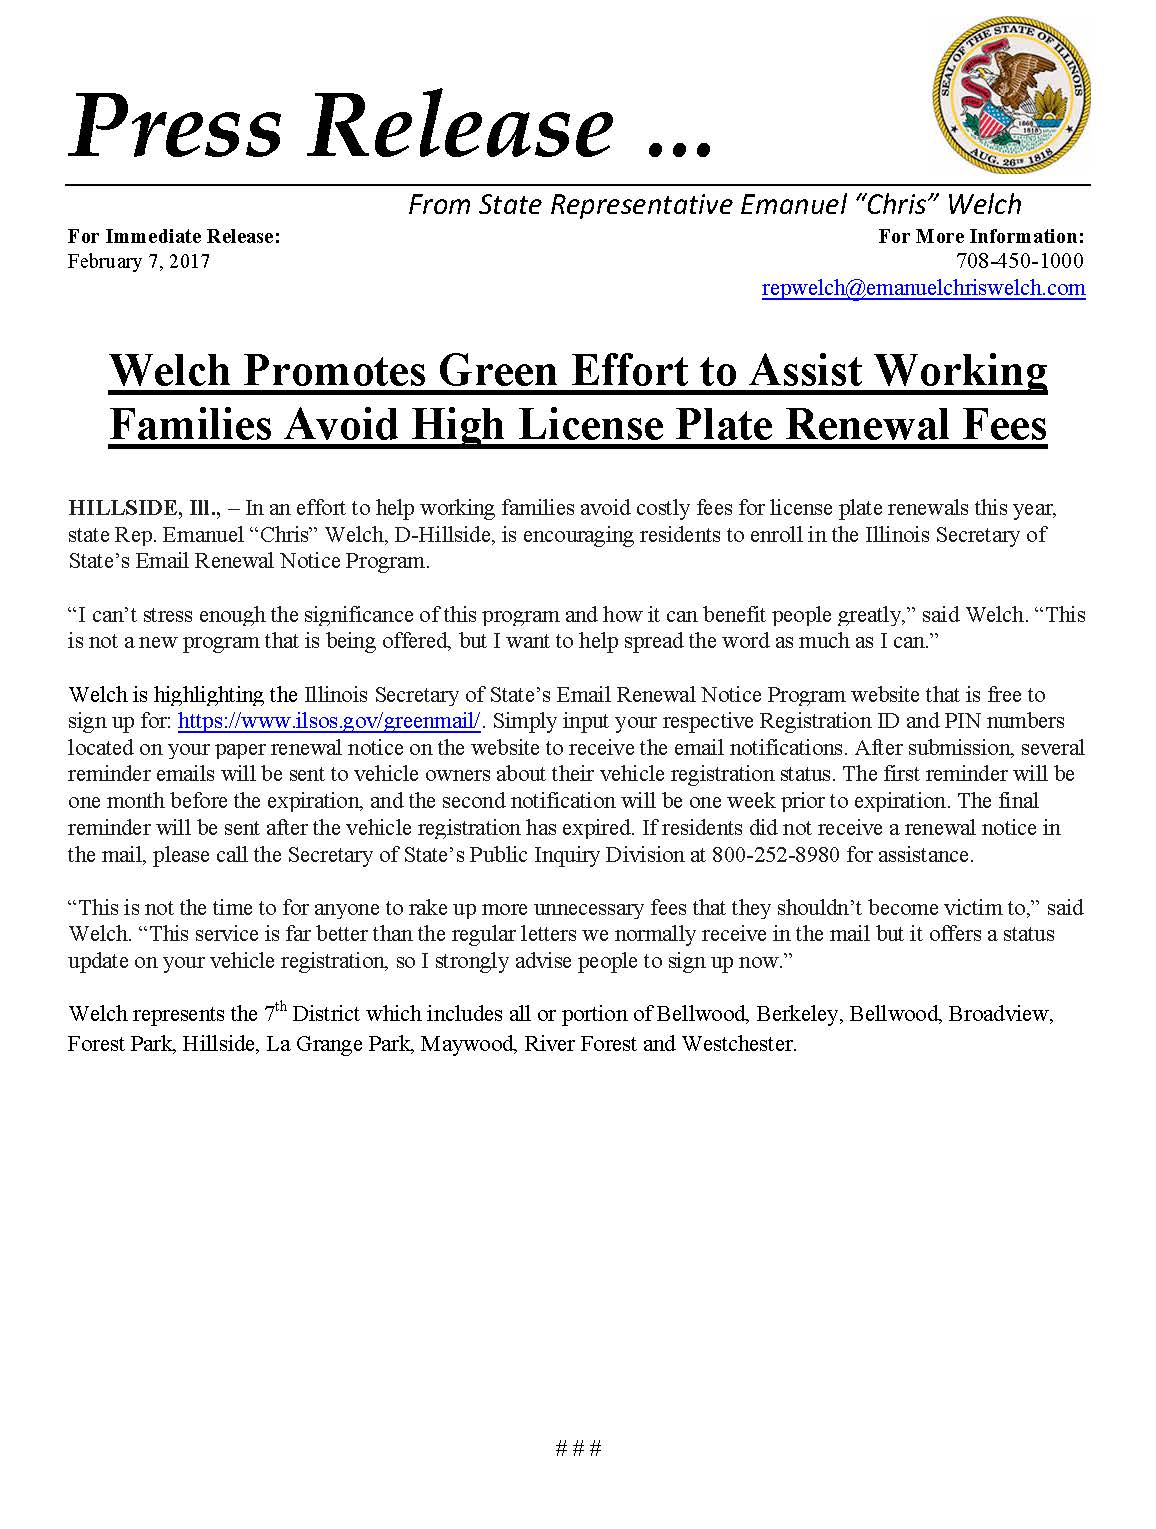 Welch Promotes Green Effort to Assist Working Families Avoid High License Plate Renewal Fees  (February 7, 2017)